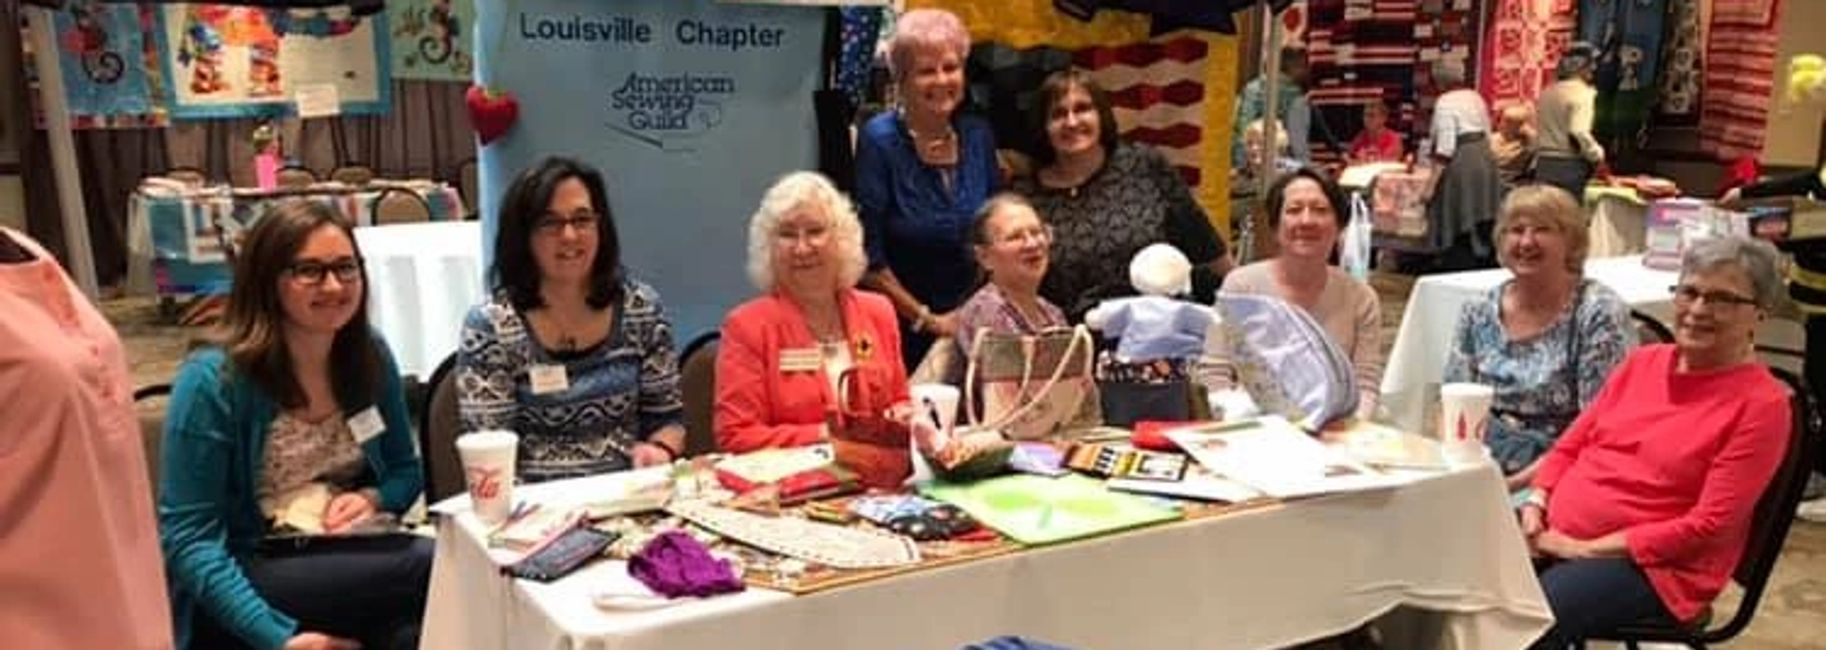 Louisville ASG Quilter's day out